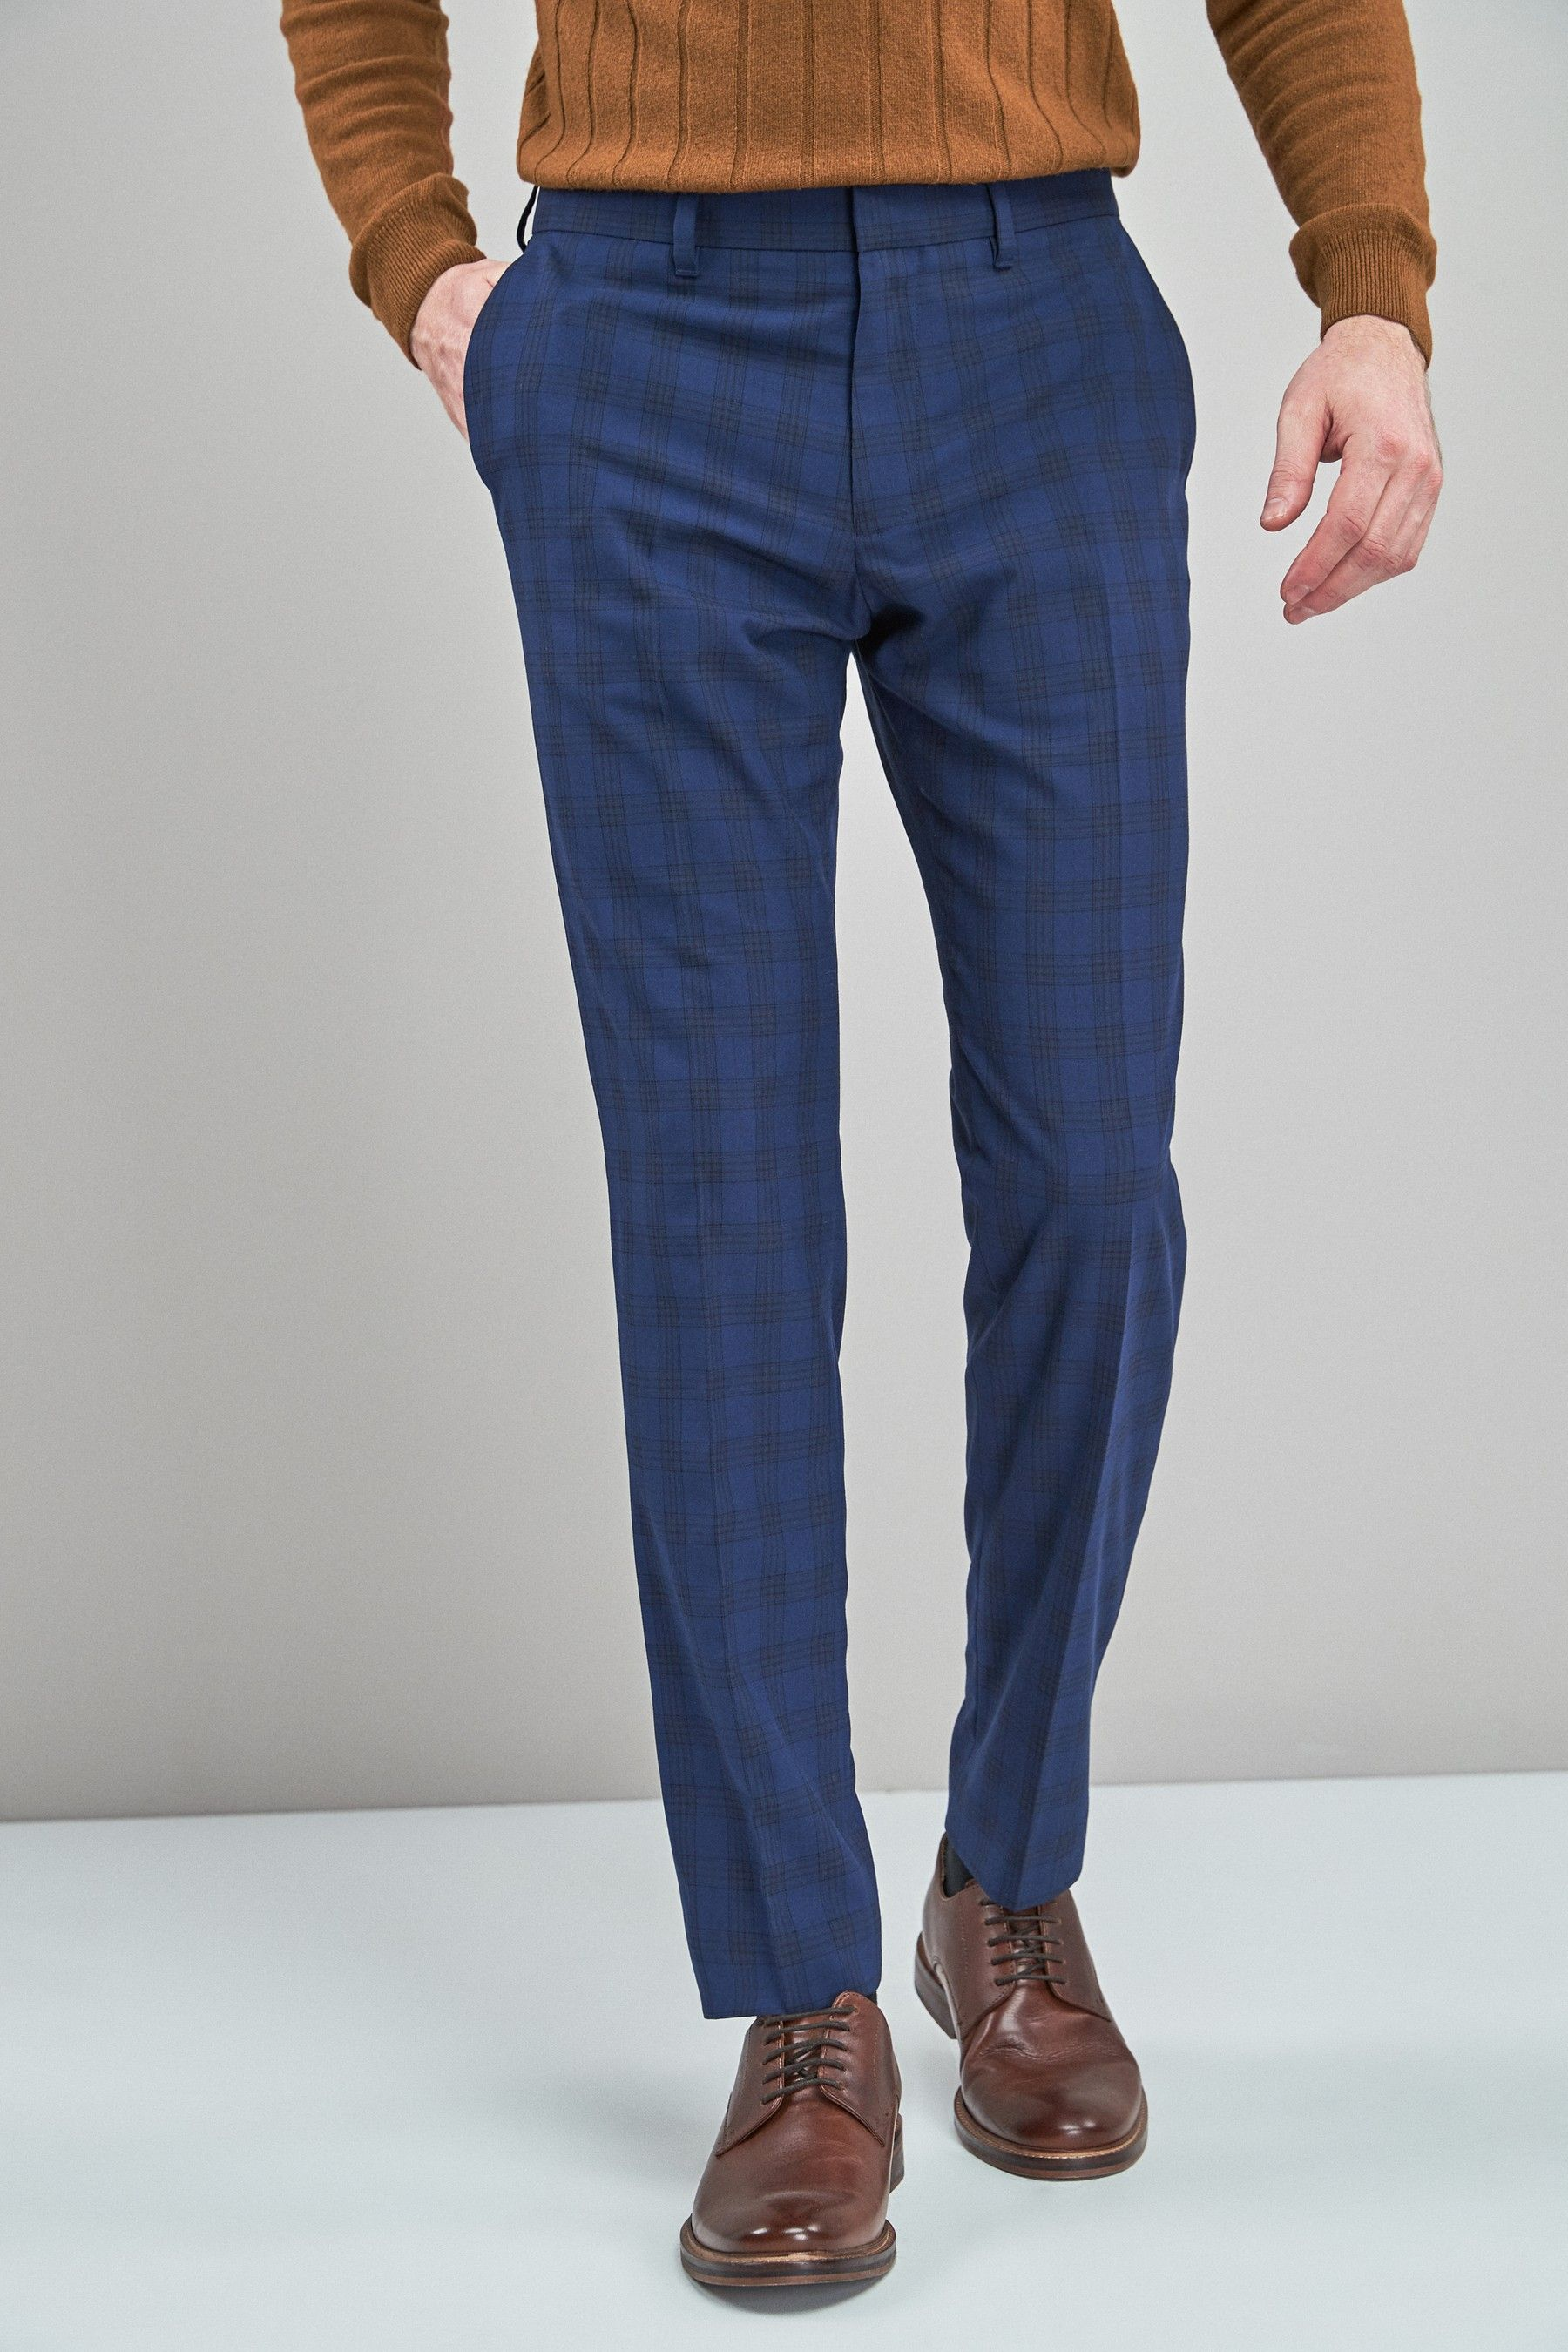 ad074ab44 Mens Next Bright Blue Check Skinny Fit Trousers - Blue | Products in ...